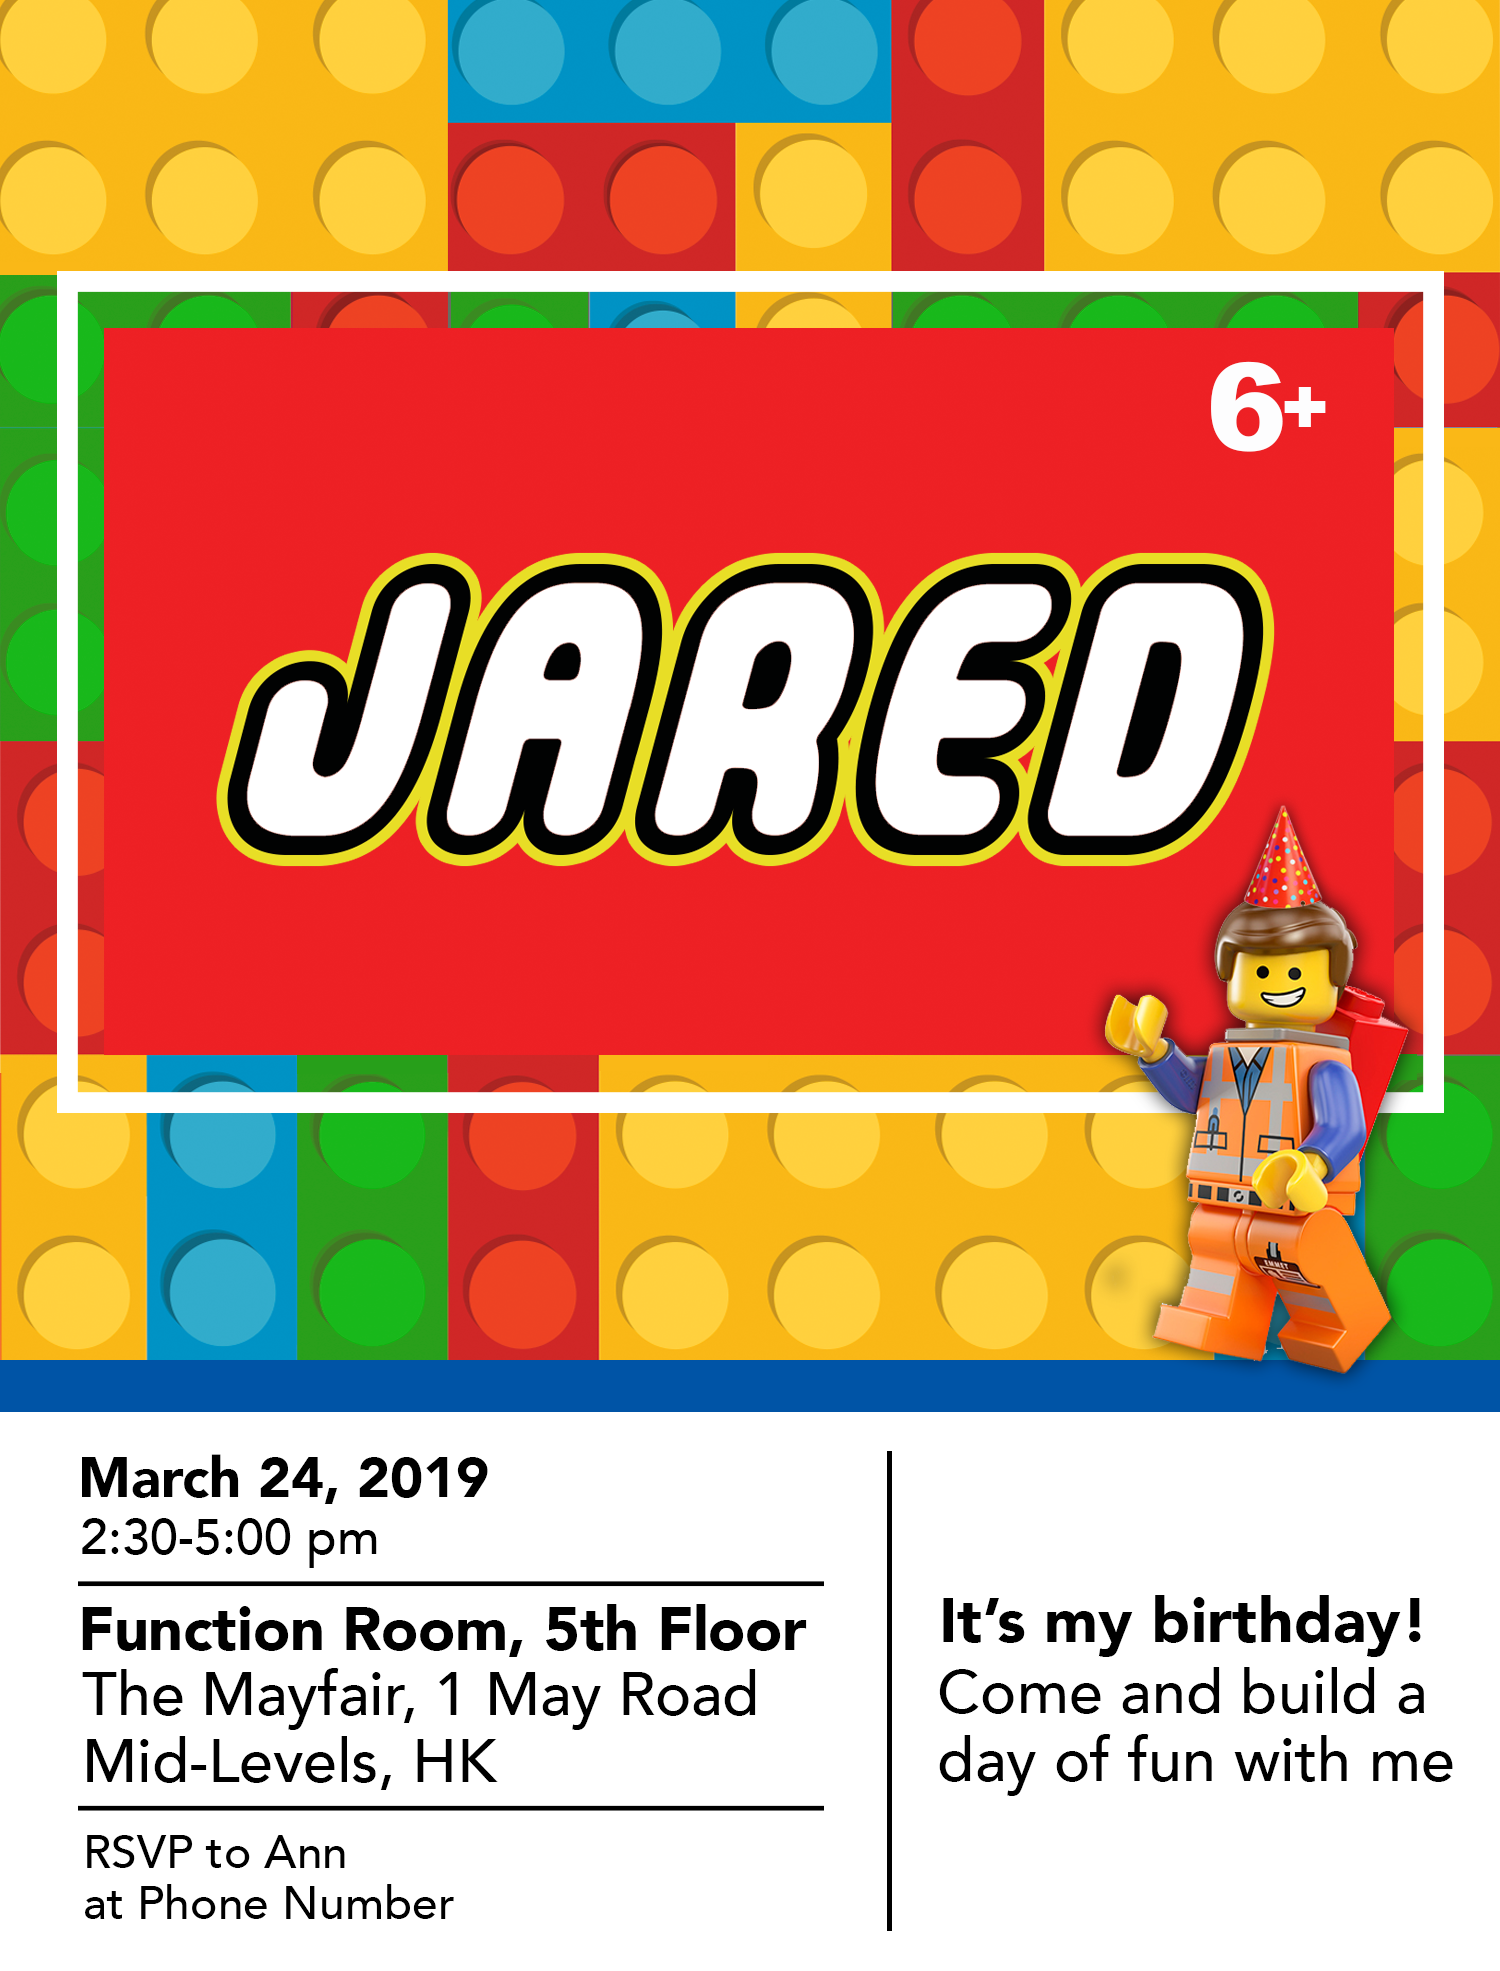 Jared Lego Invitation 2.png